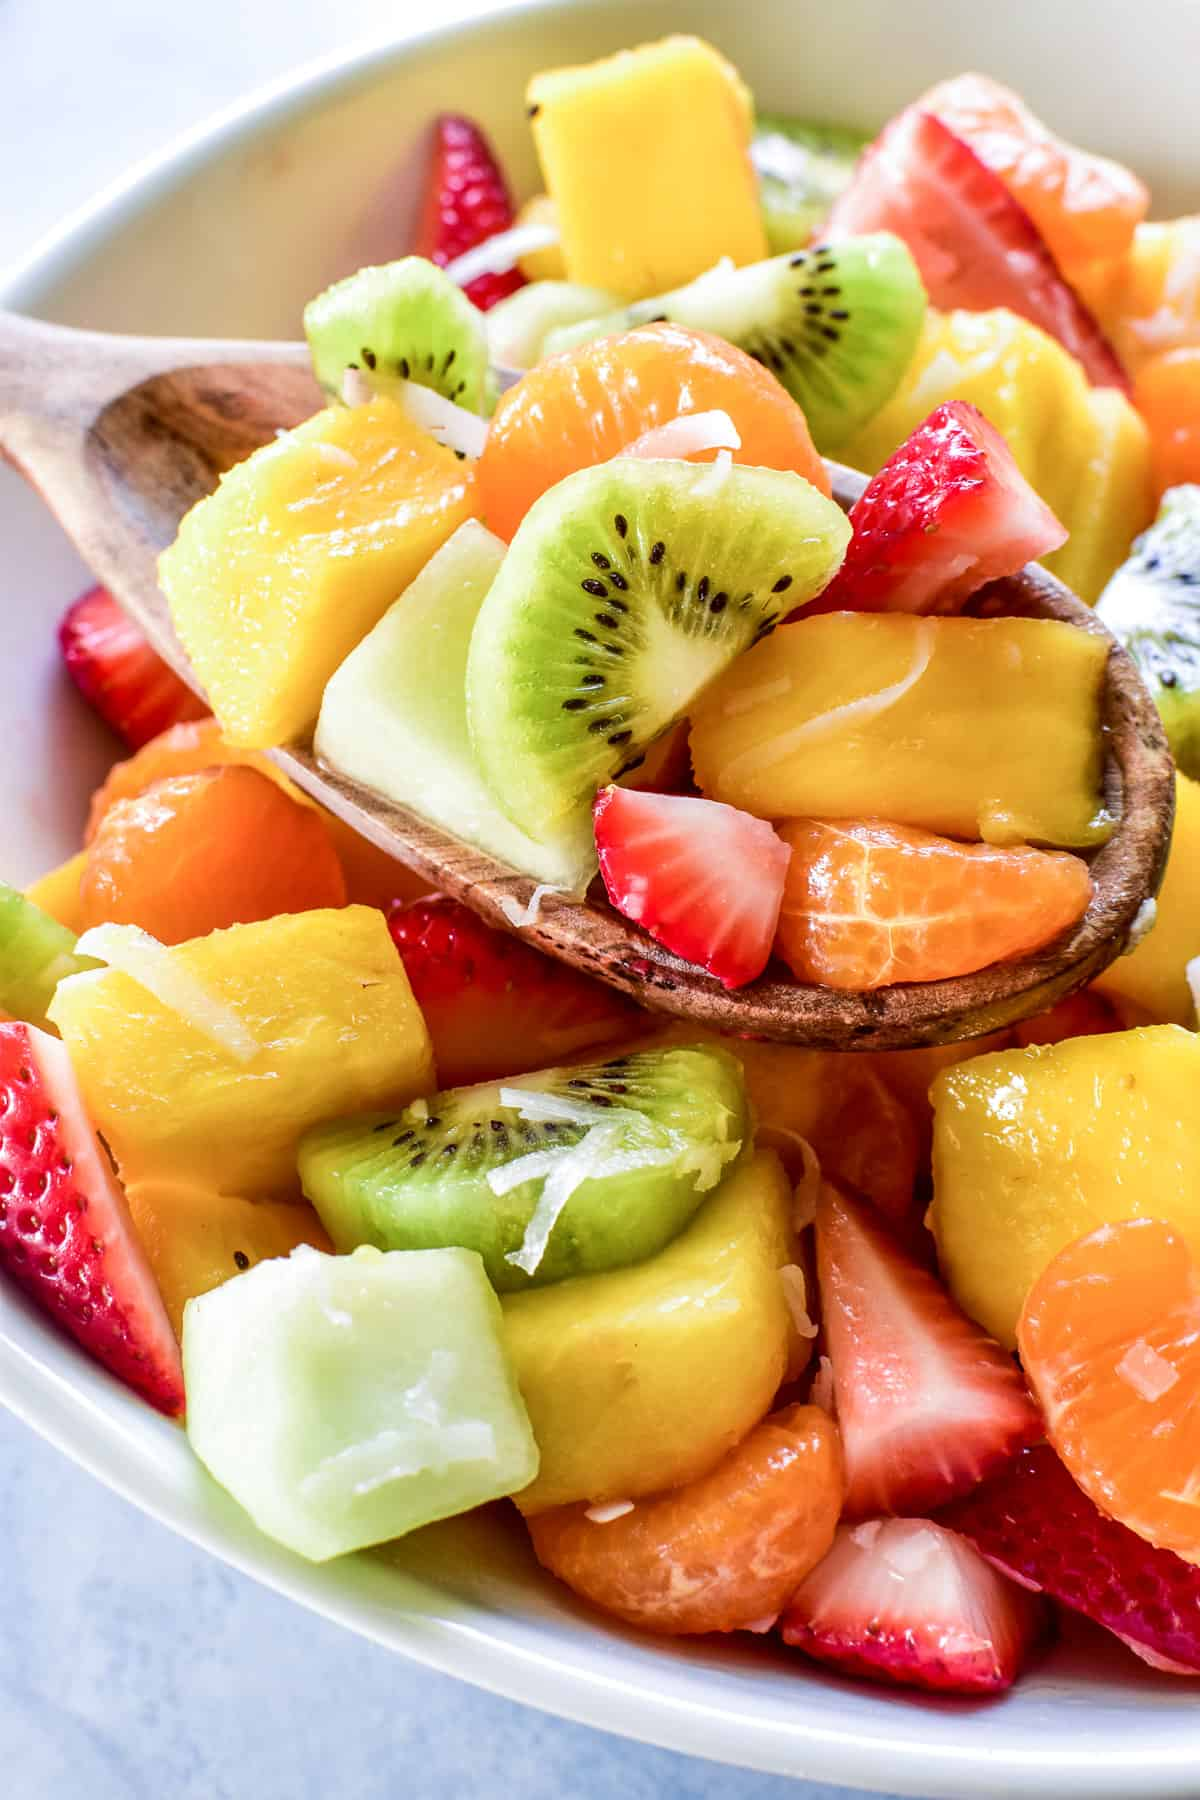 Tropical Fruit Salad served with a wooden spoon